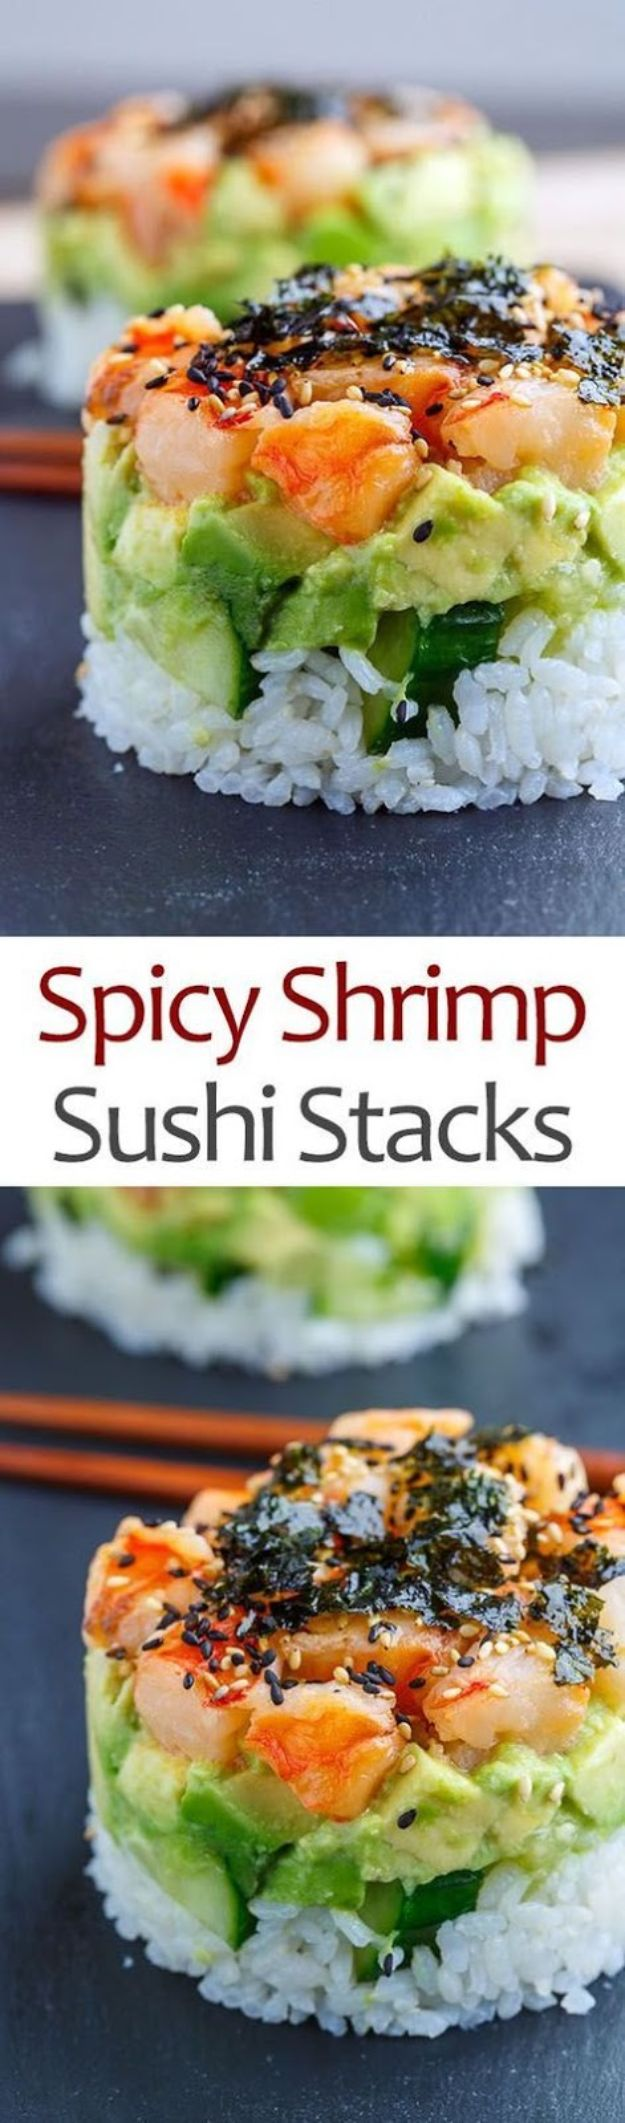 Shrimp Recipes - Spicy Shrimp Sushi Stacks - Healthy, Easy Recipe Ideas for Dinner Using Shrimp - Grilled, Creamy Baked Pasta, Fried, Spicy Asian Style, Mexican, Sauteed Garlic